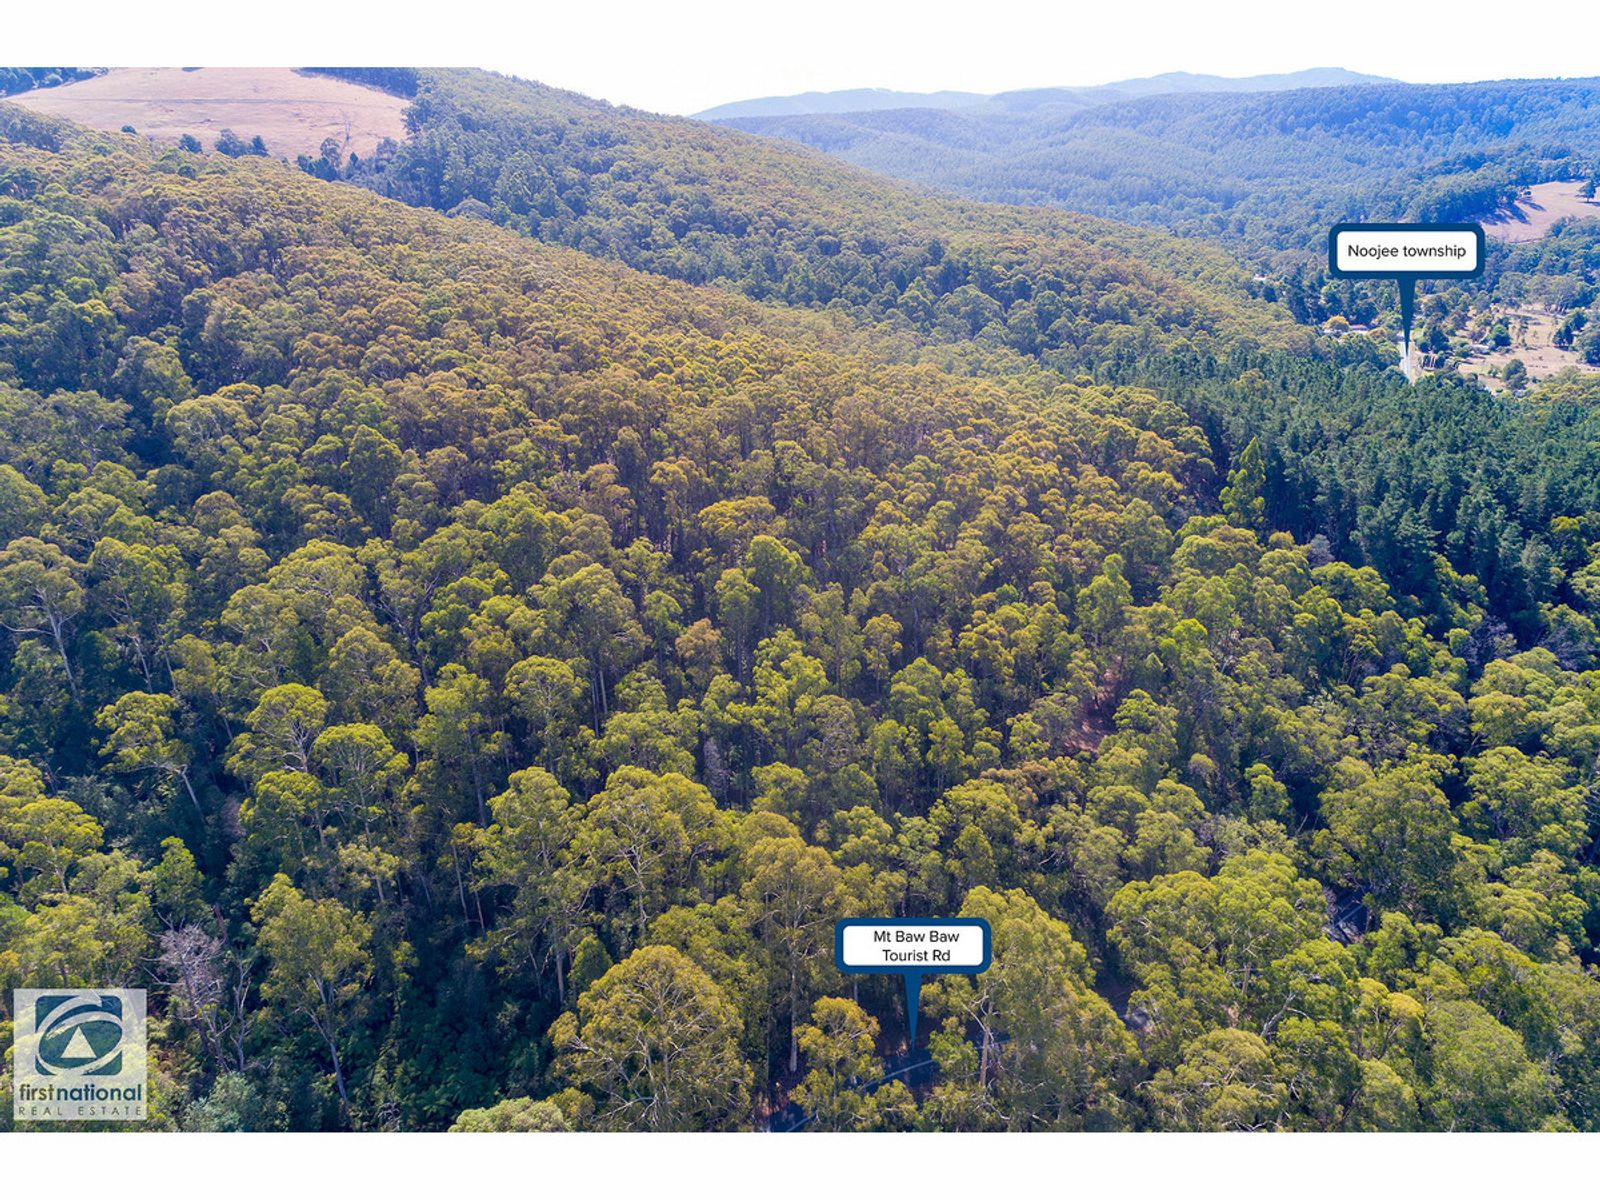 570 Mt Baw Baw Tourist Road, Noojee, VIC 3833